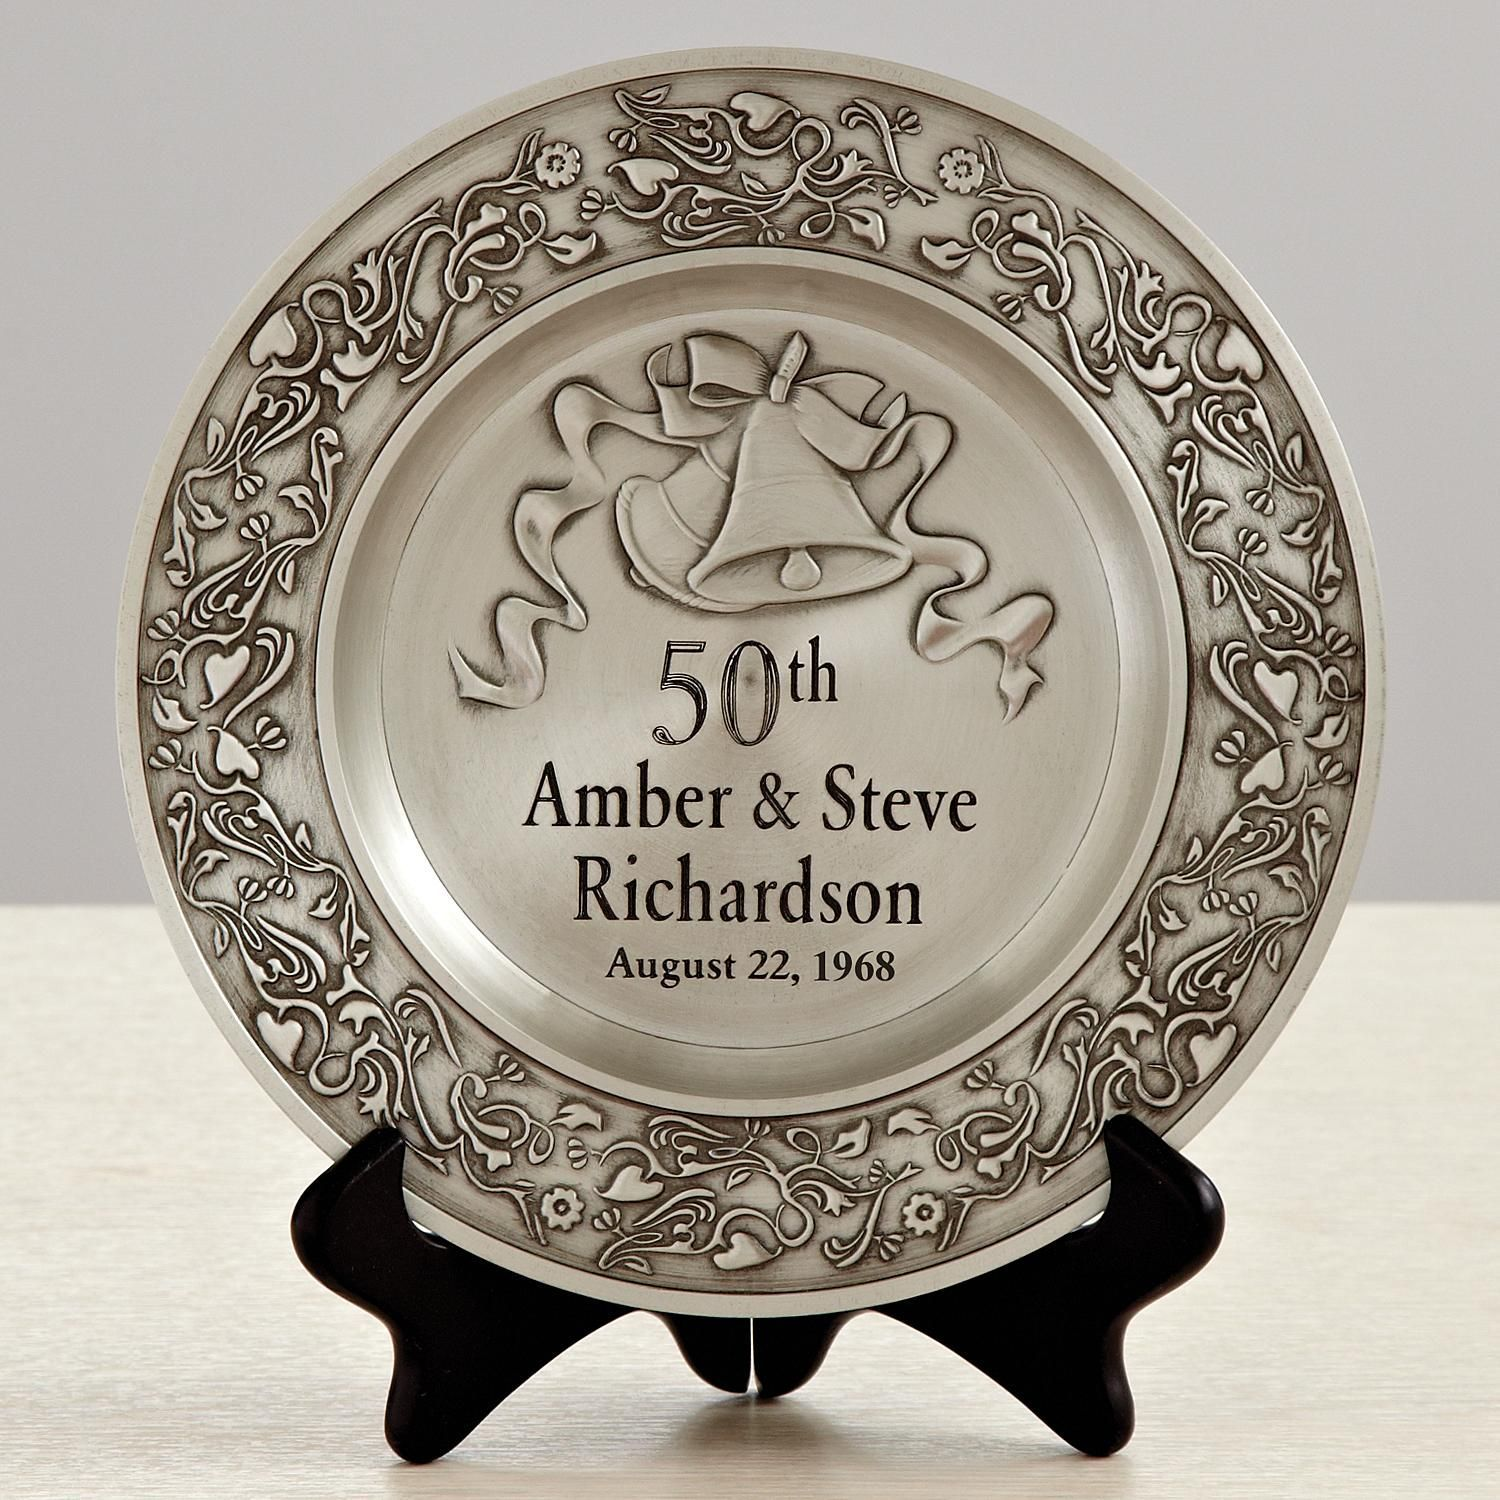 Anniversary Pewter Plate in 2020 50 wedding anniversary